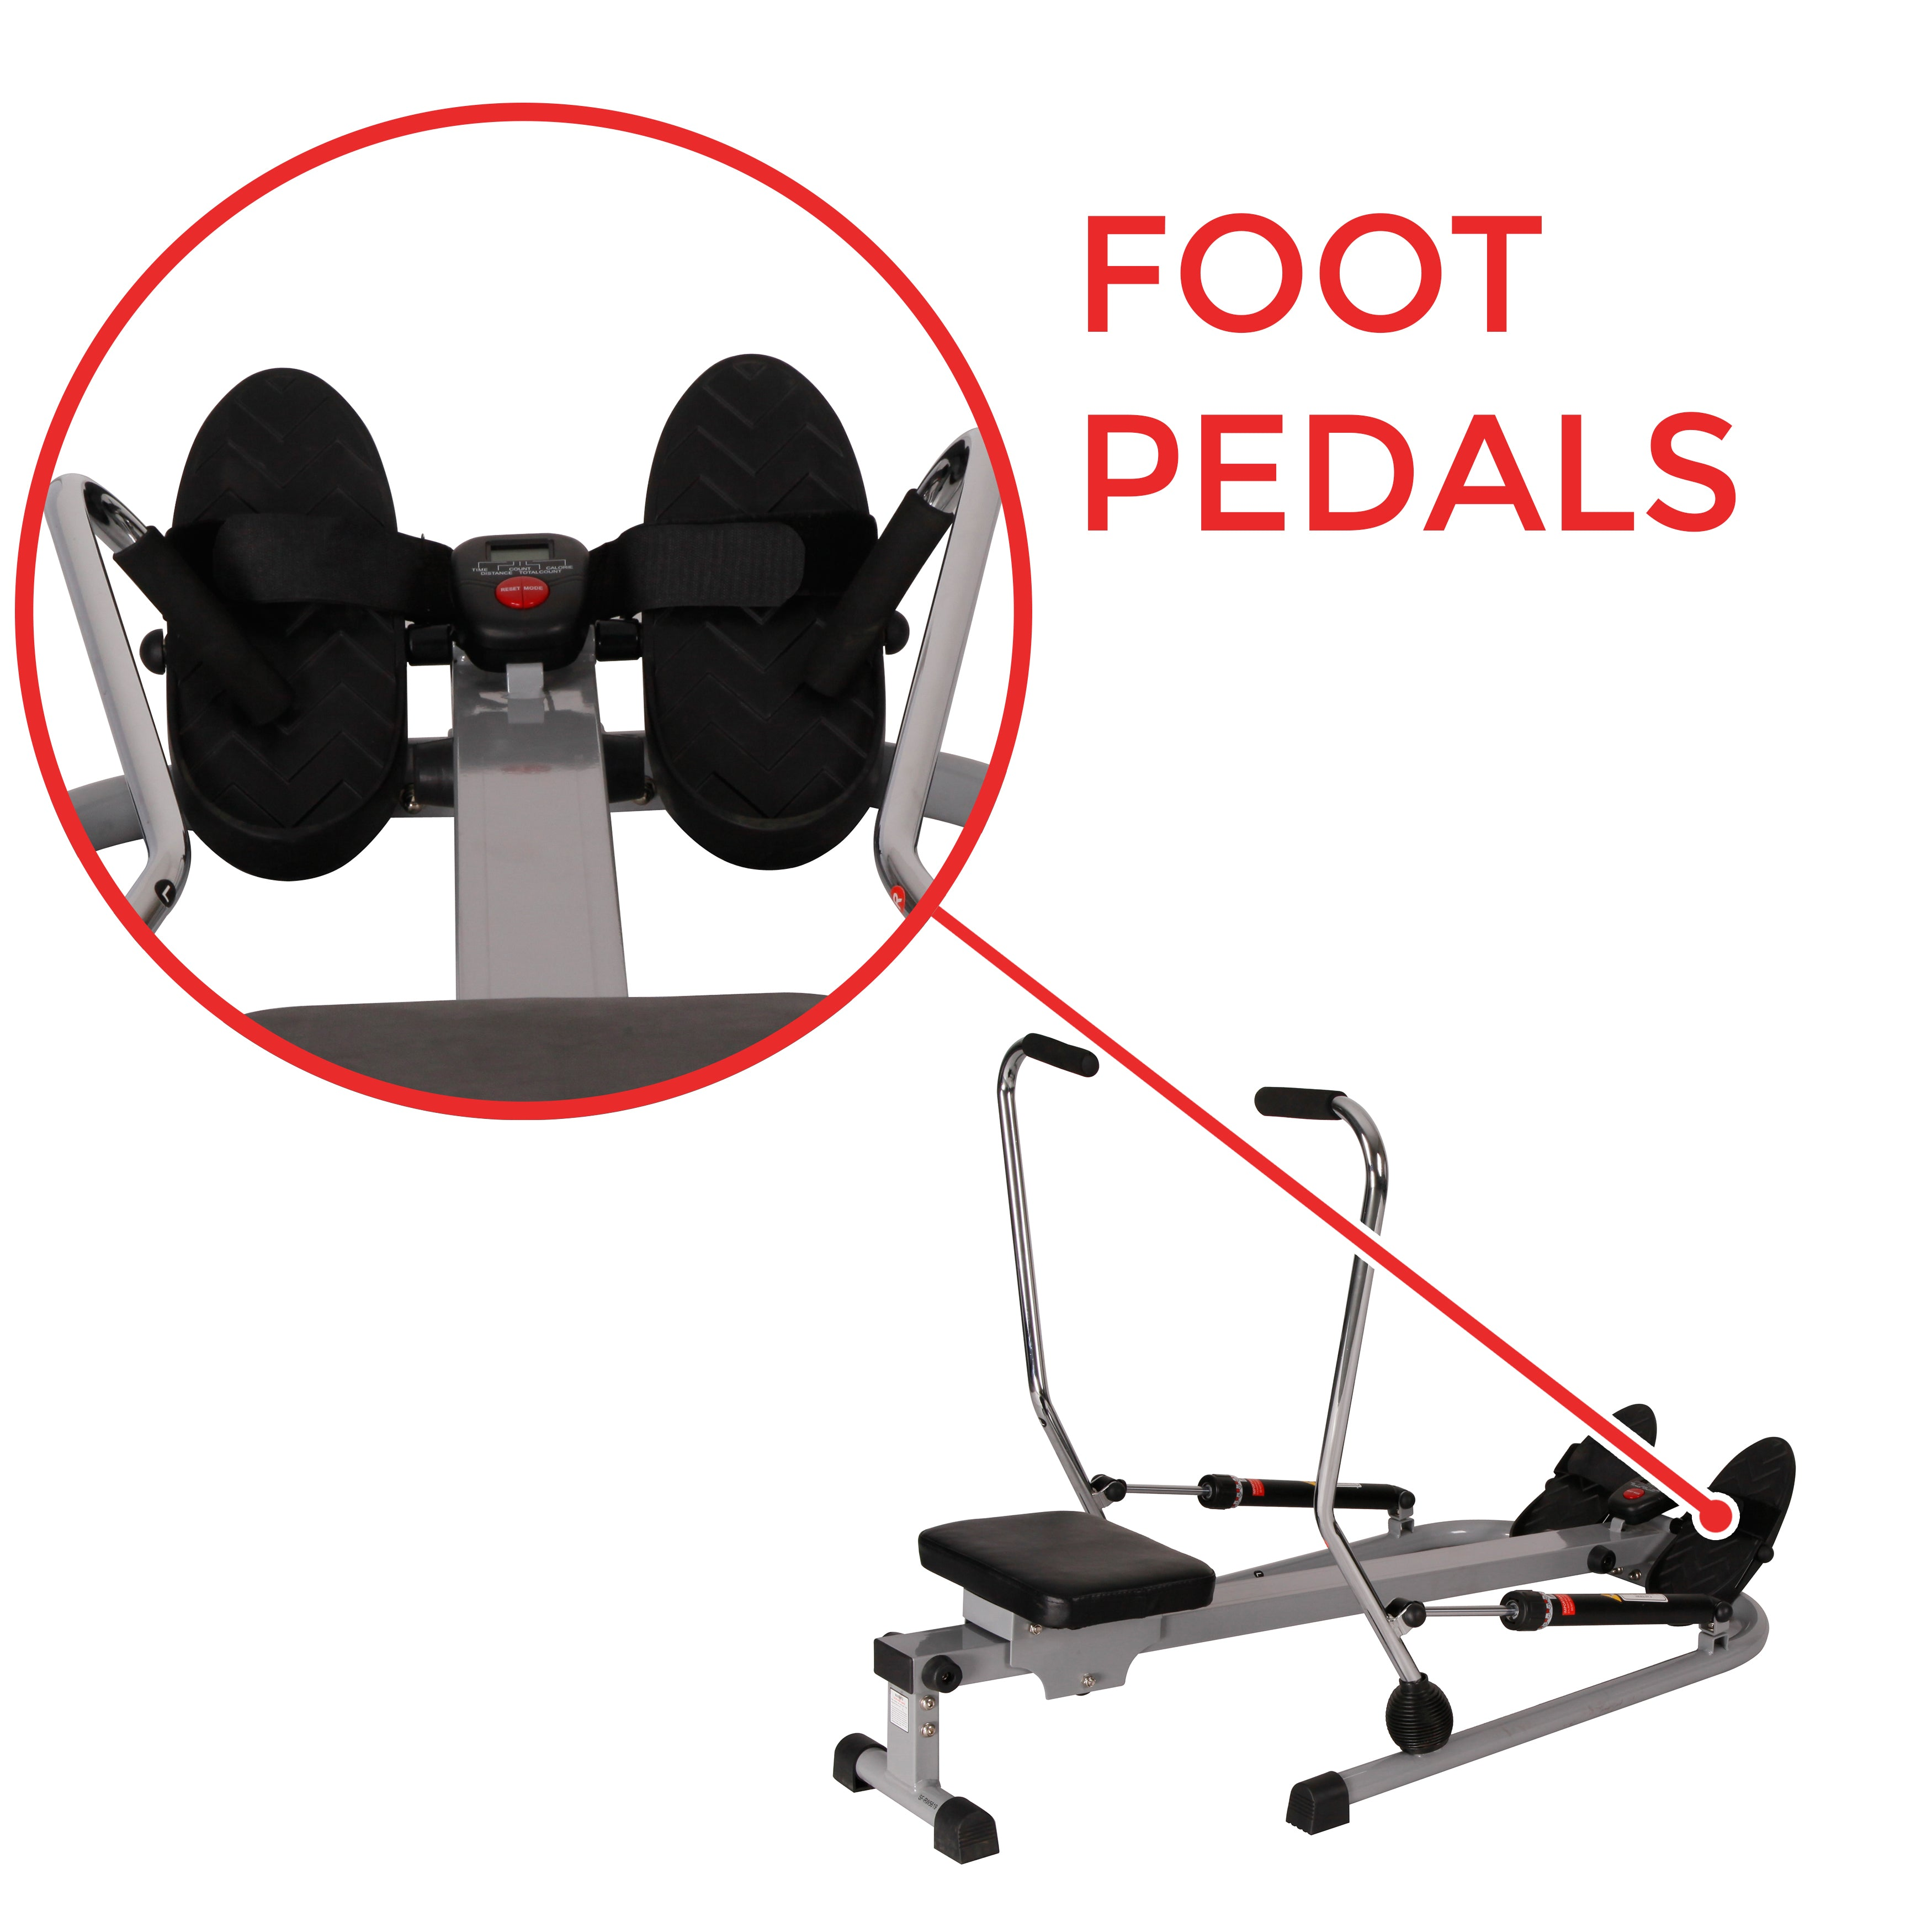 SF-RW5619_FootPedals_CallOut.jpg